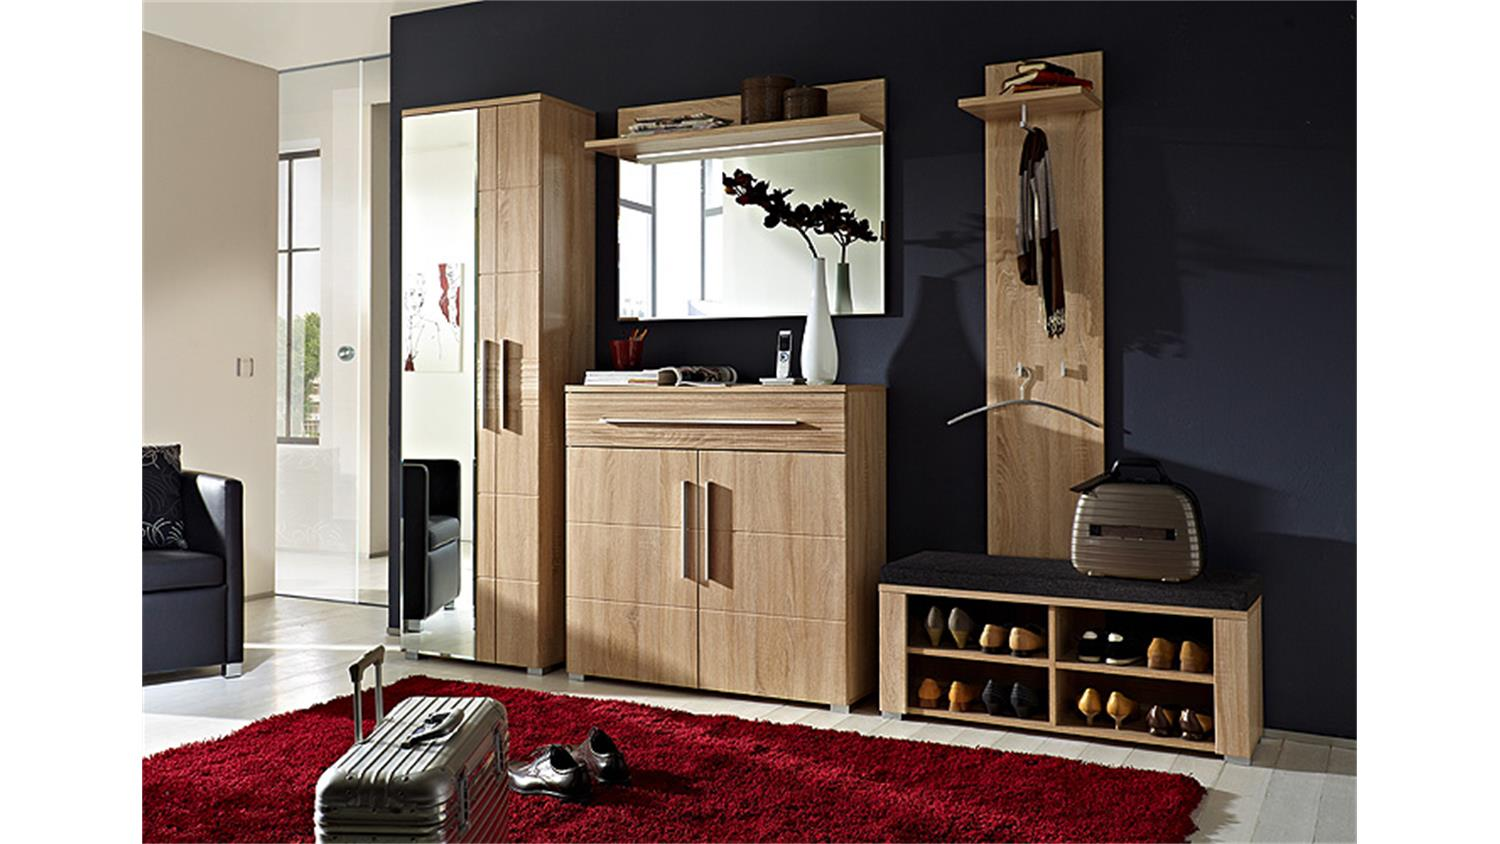 schubank point sonoma eiche hell inkl sitzkissen. Black Bedroom Furniture Sets. Home Design Ideas